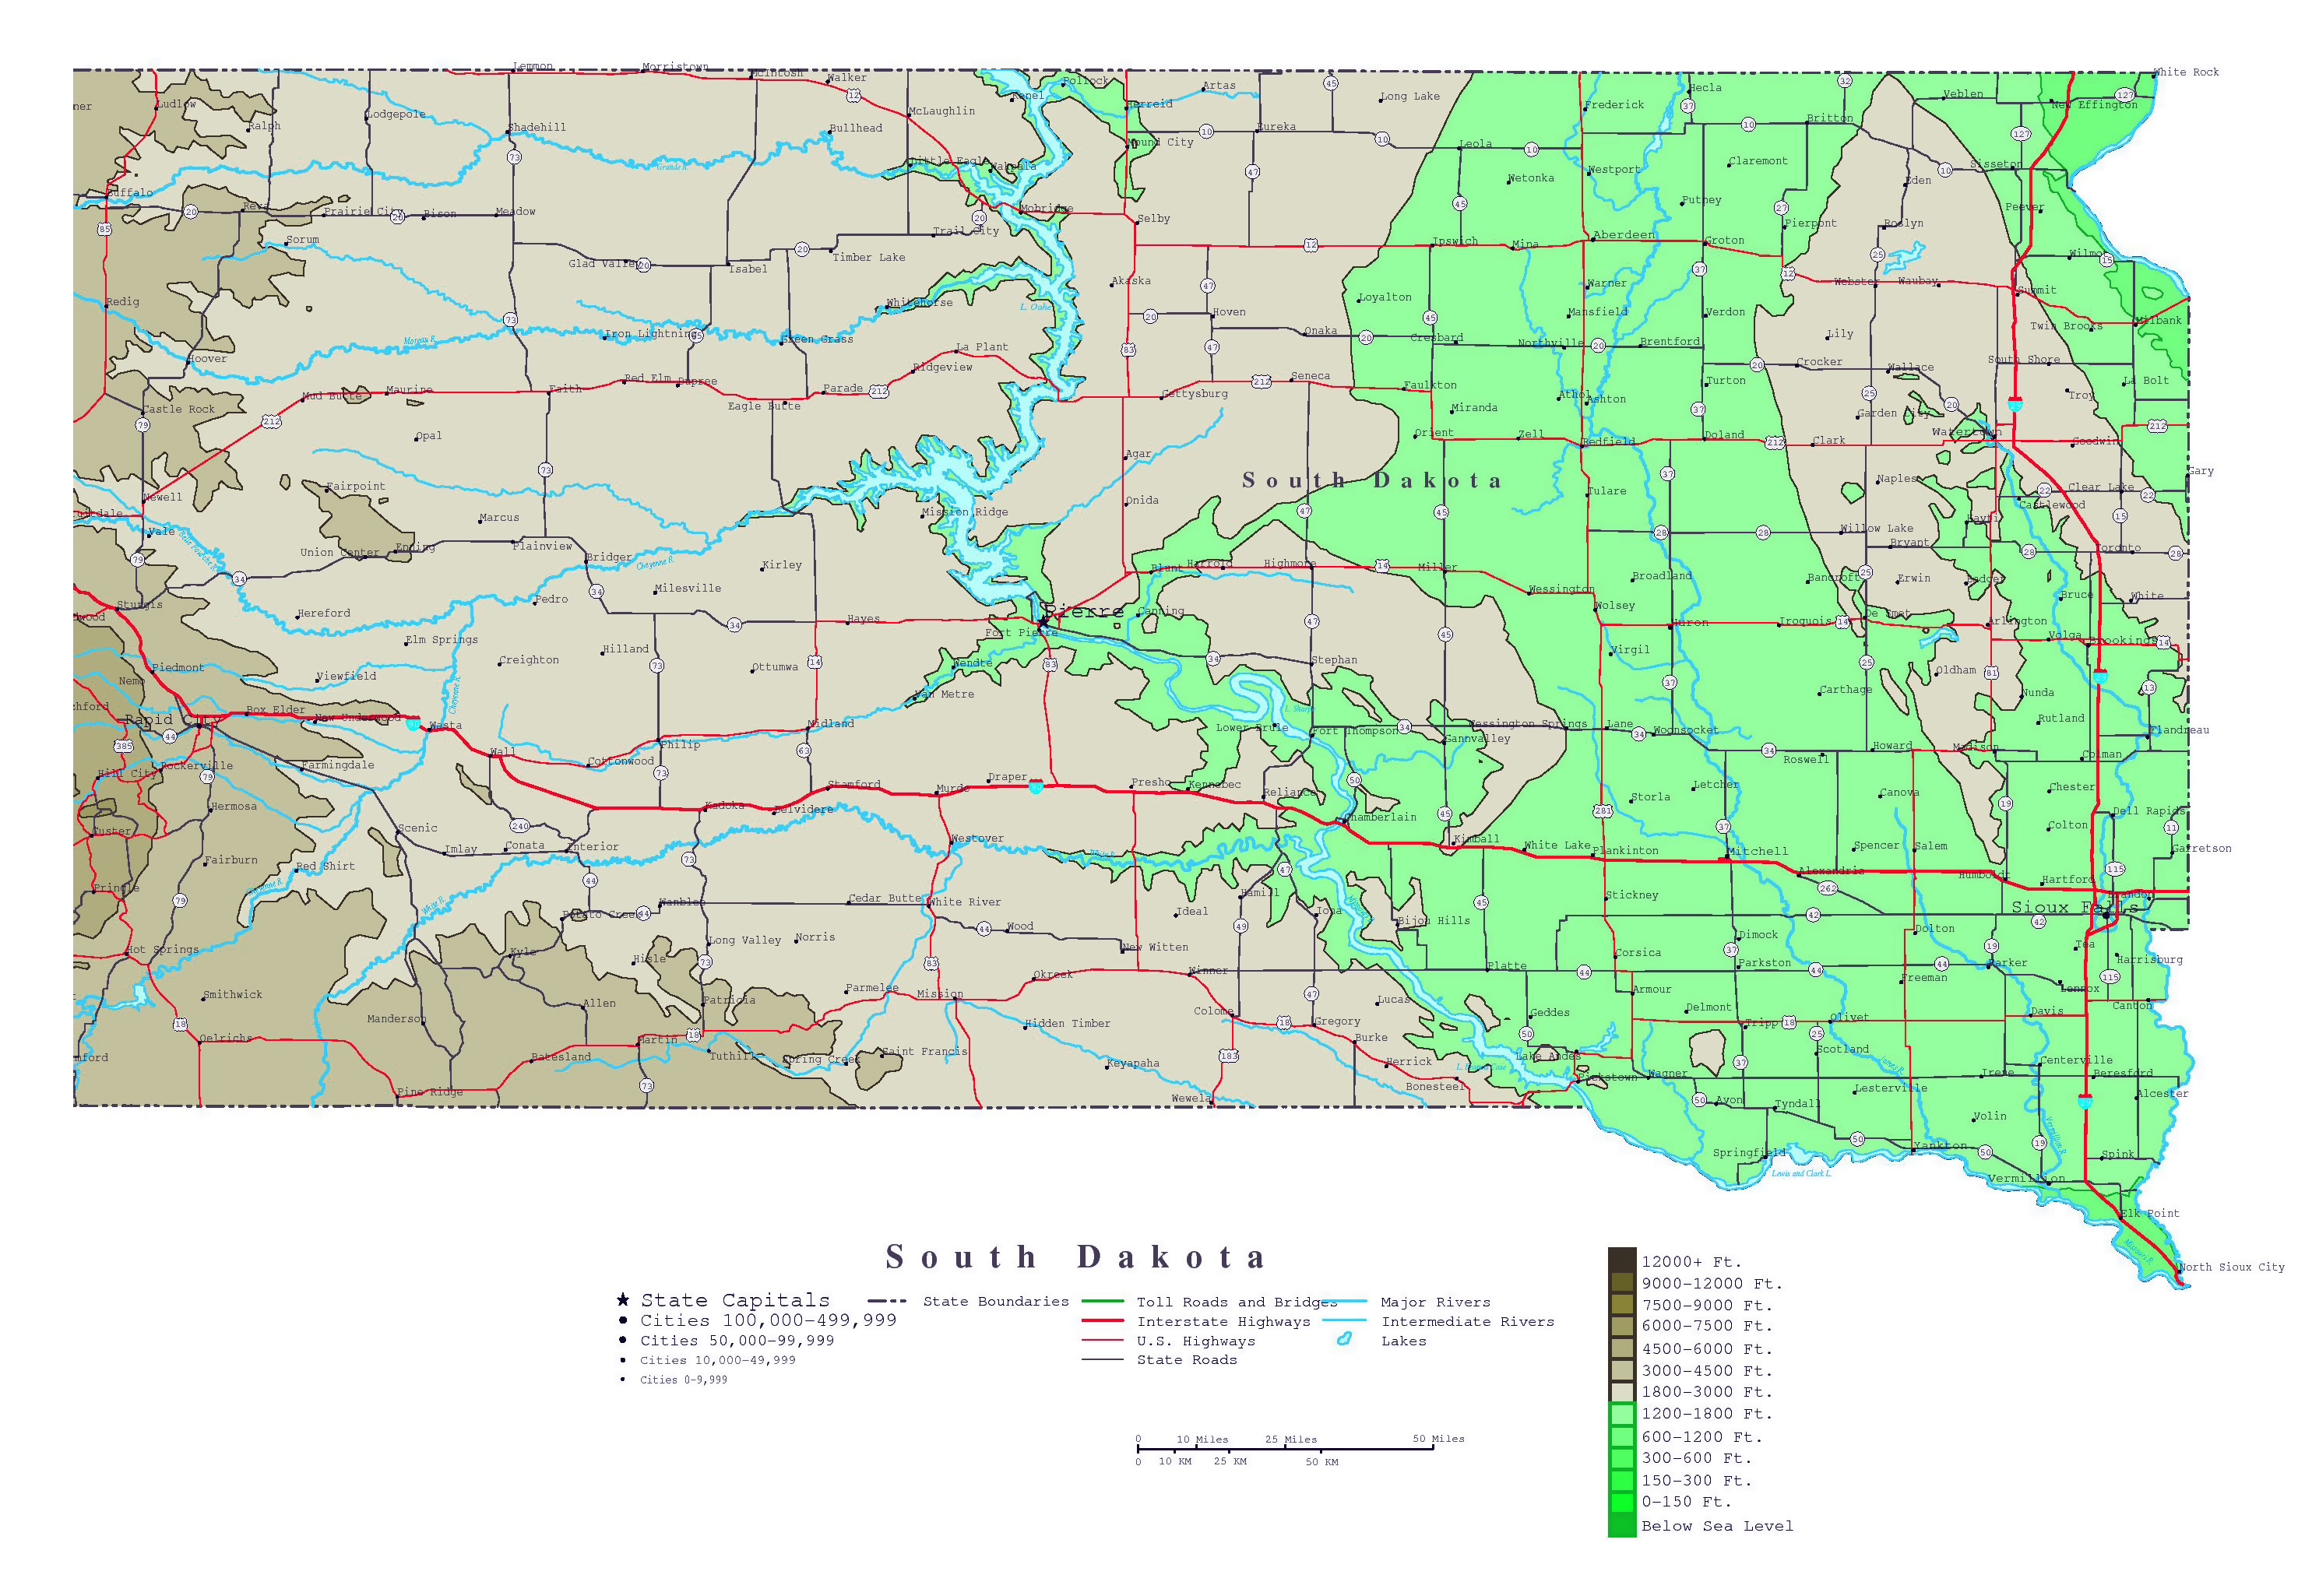 Large Detailed Elevation Map Of South Dakota State With Roads